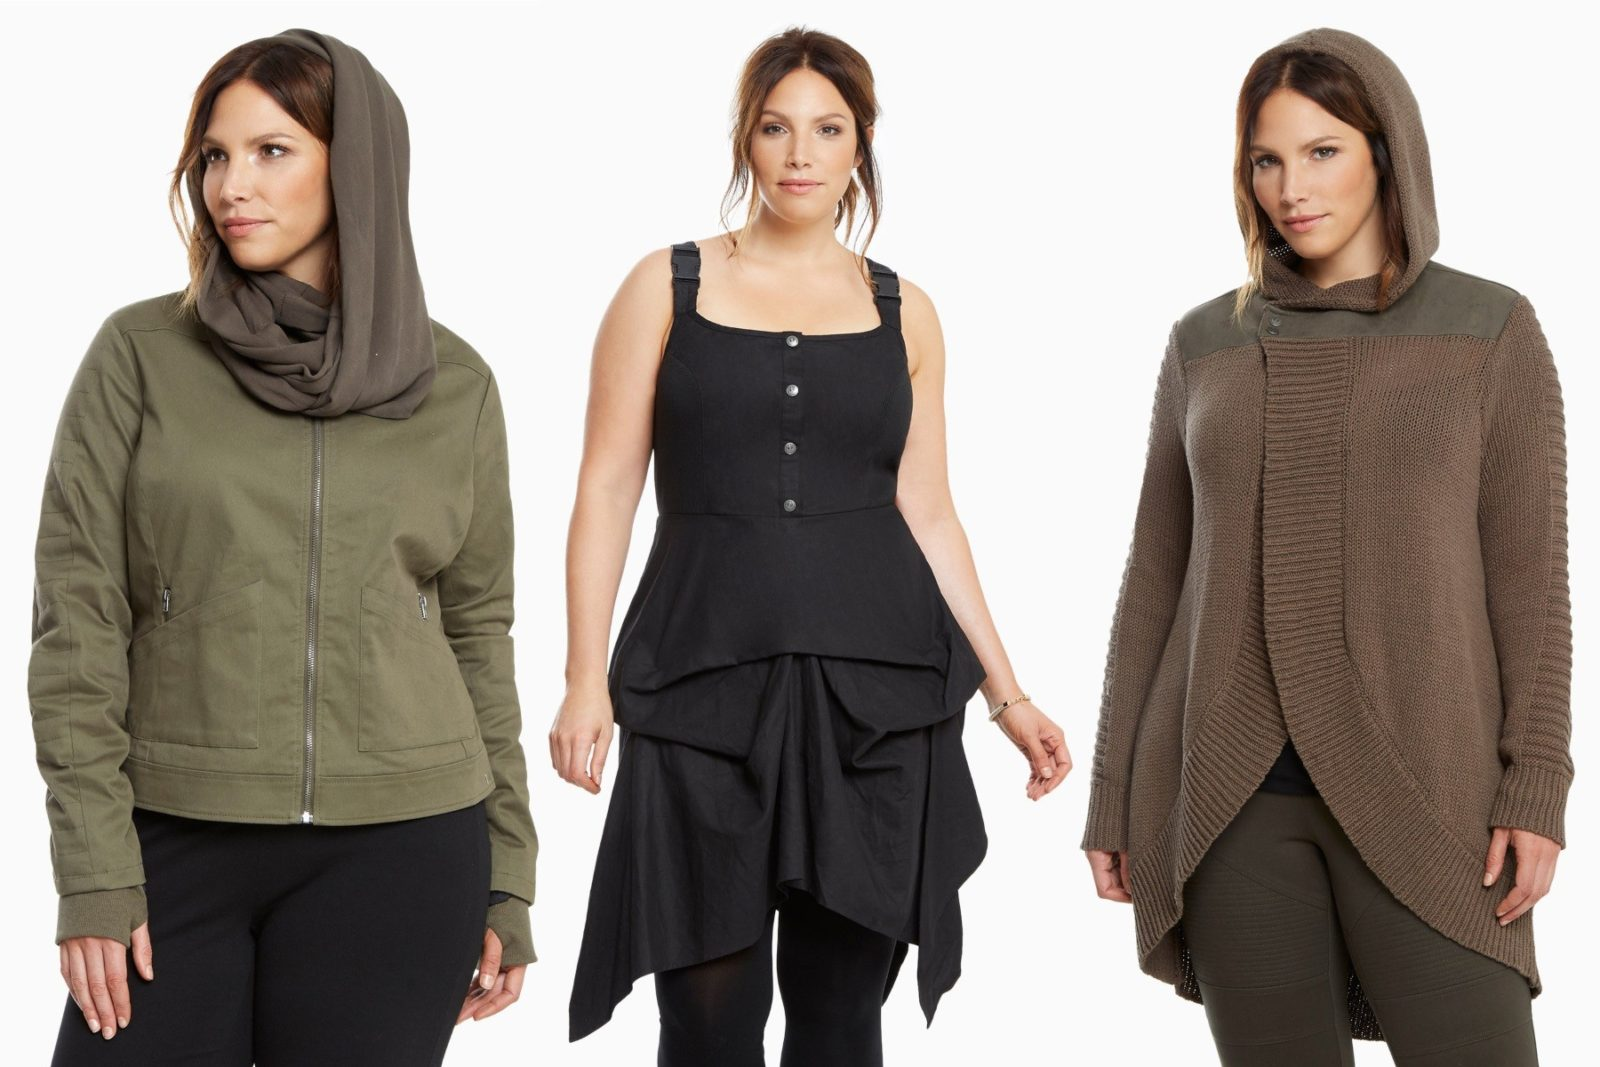 New Rogue One collection at Torrid!